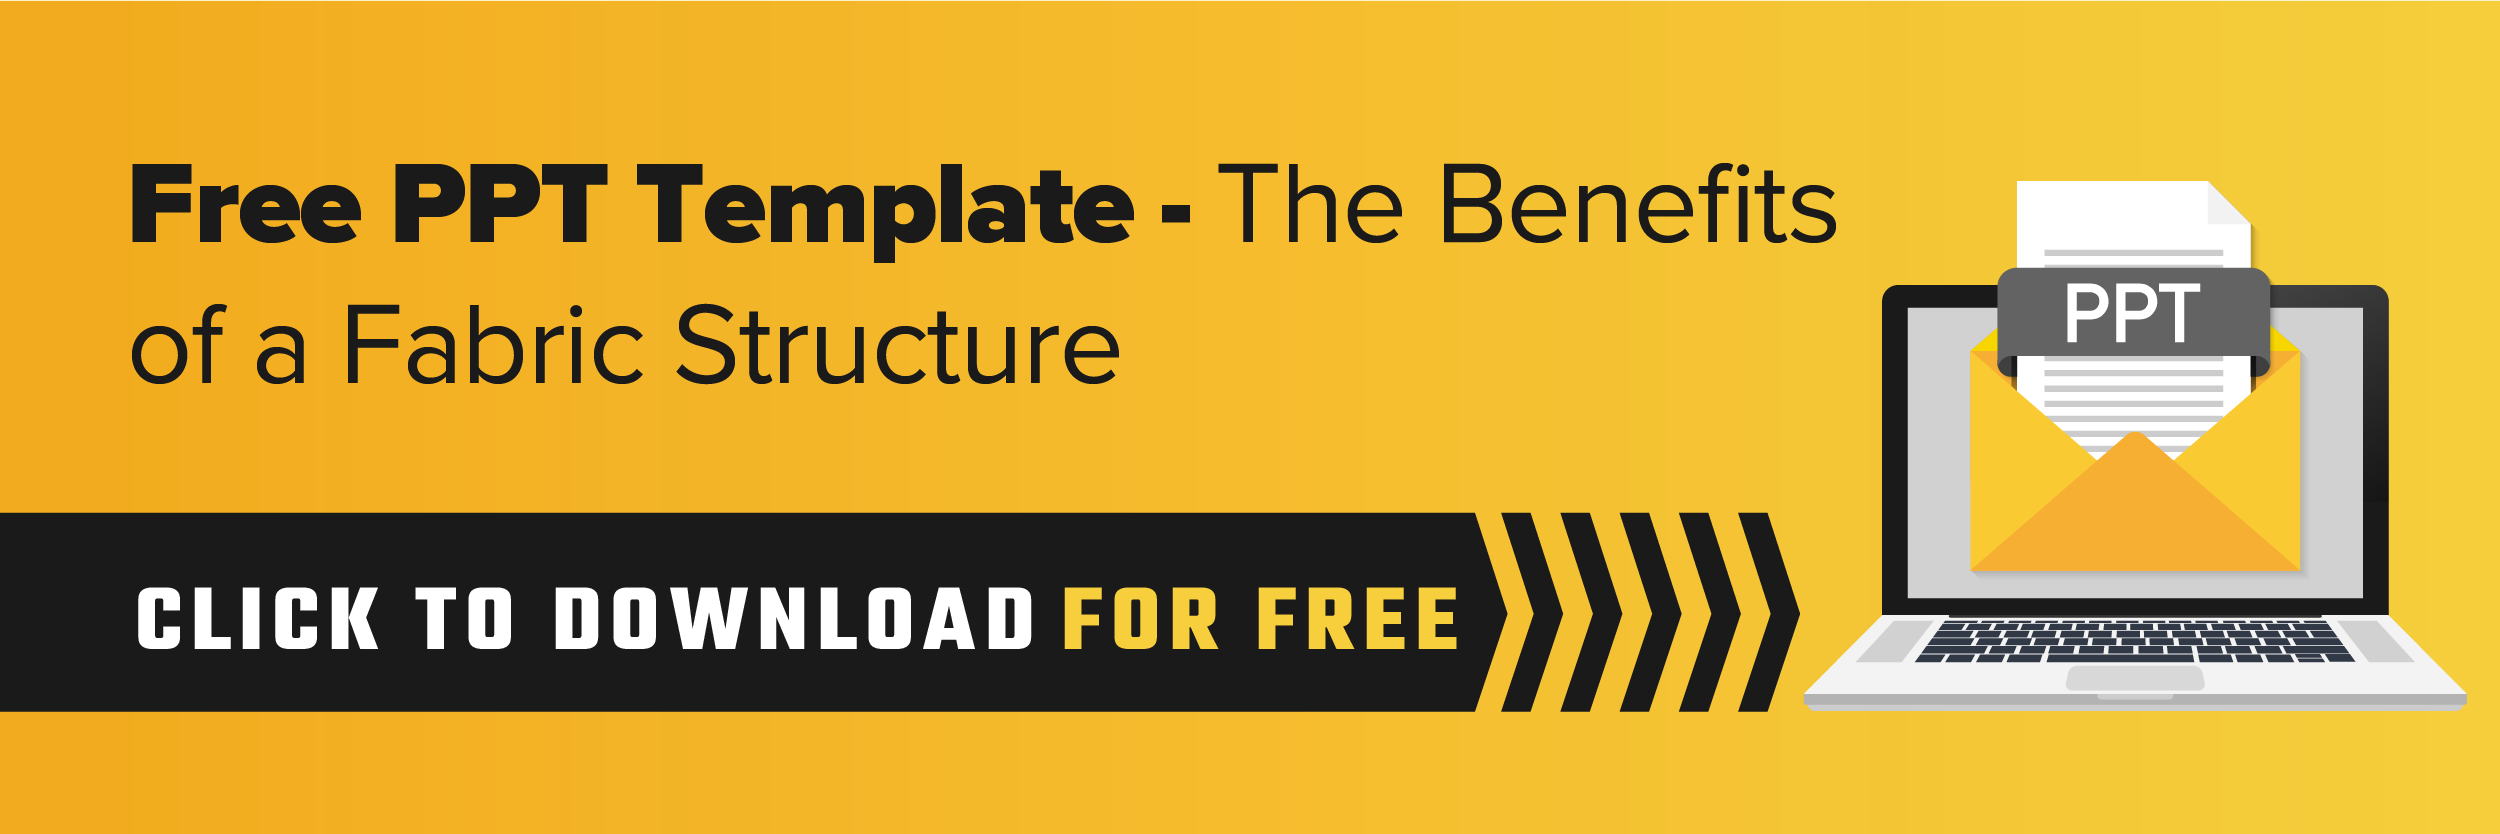 Free PowerPoint Template - The Benefits of a Fabric Structure